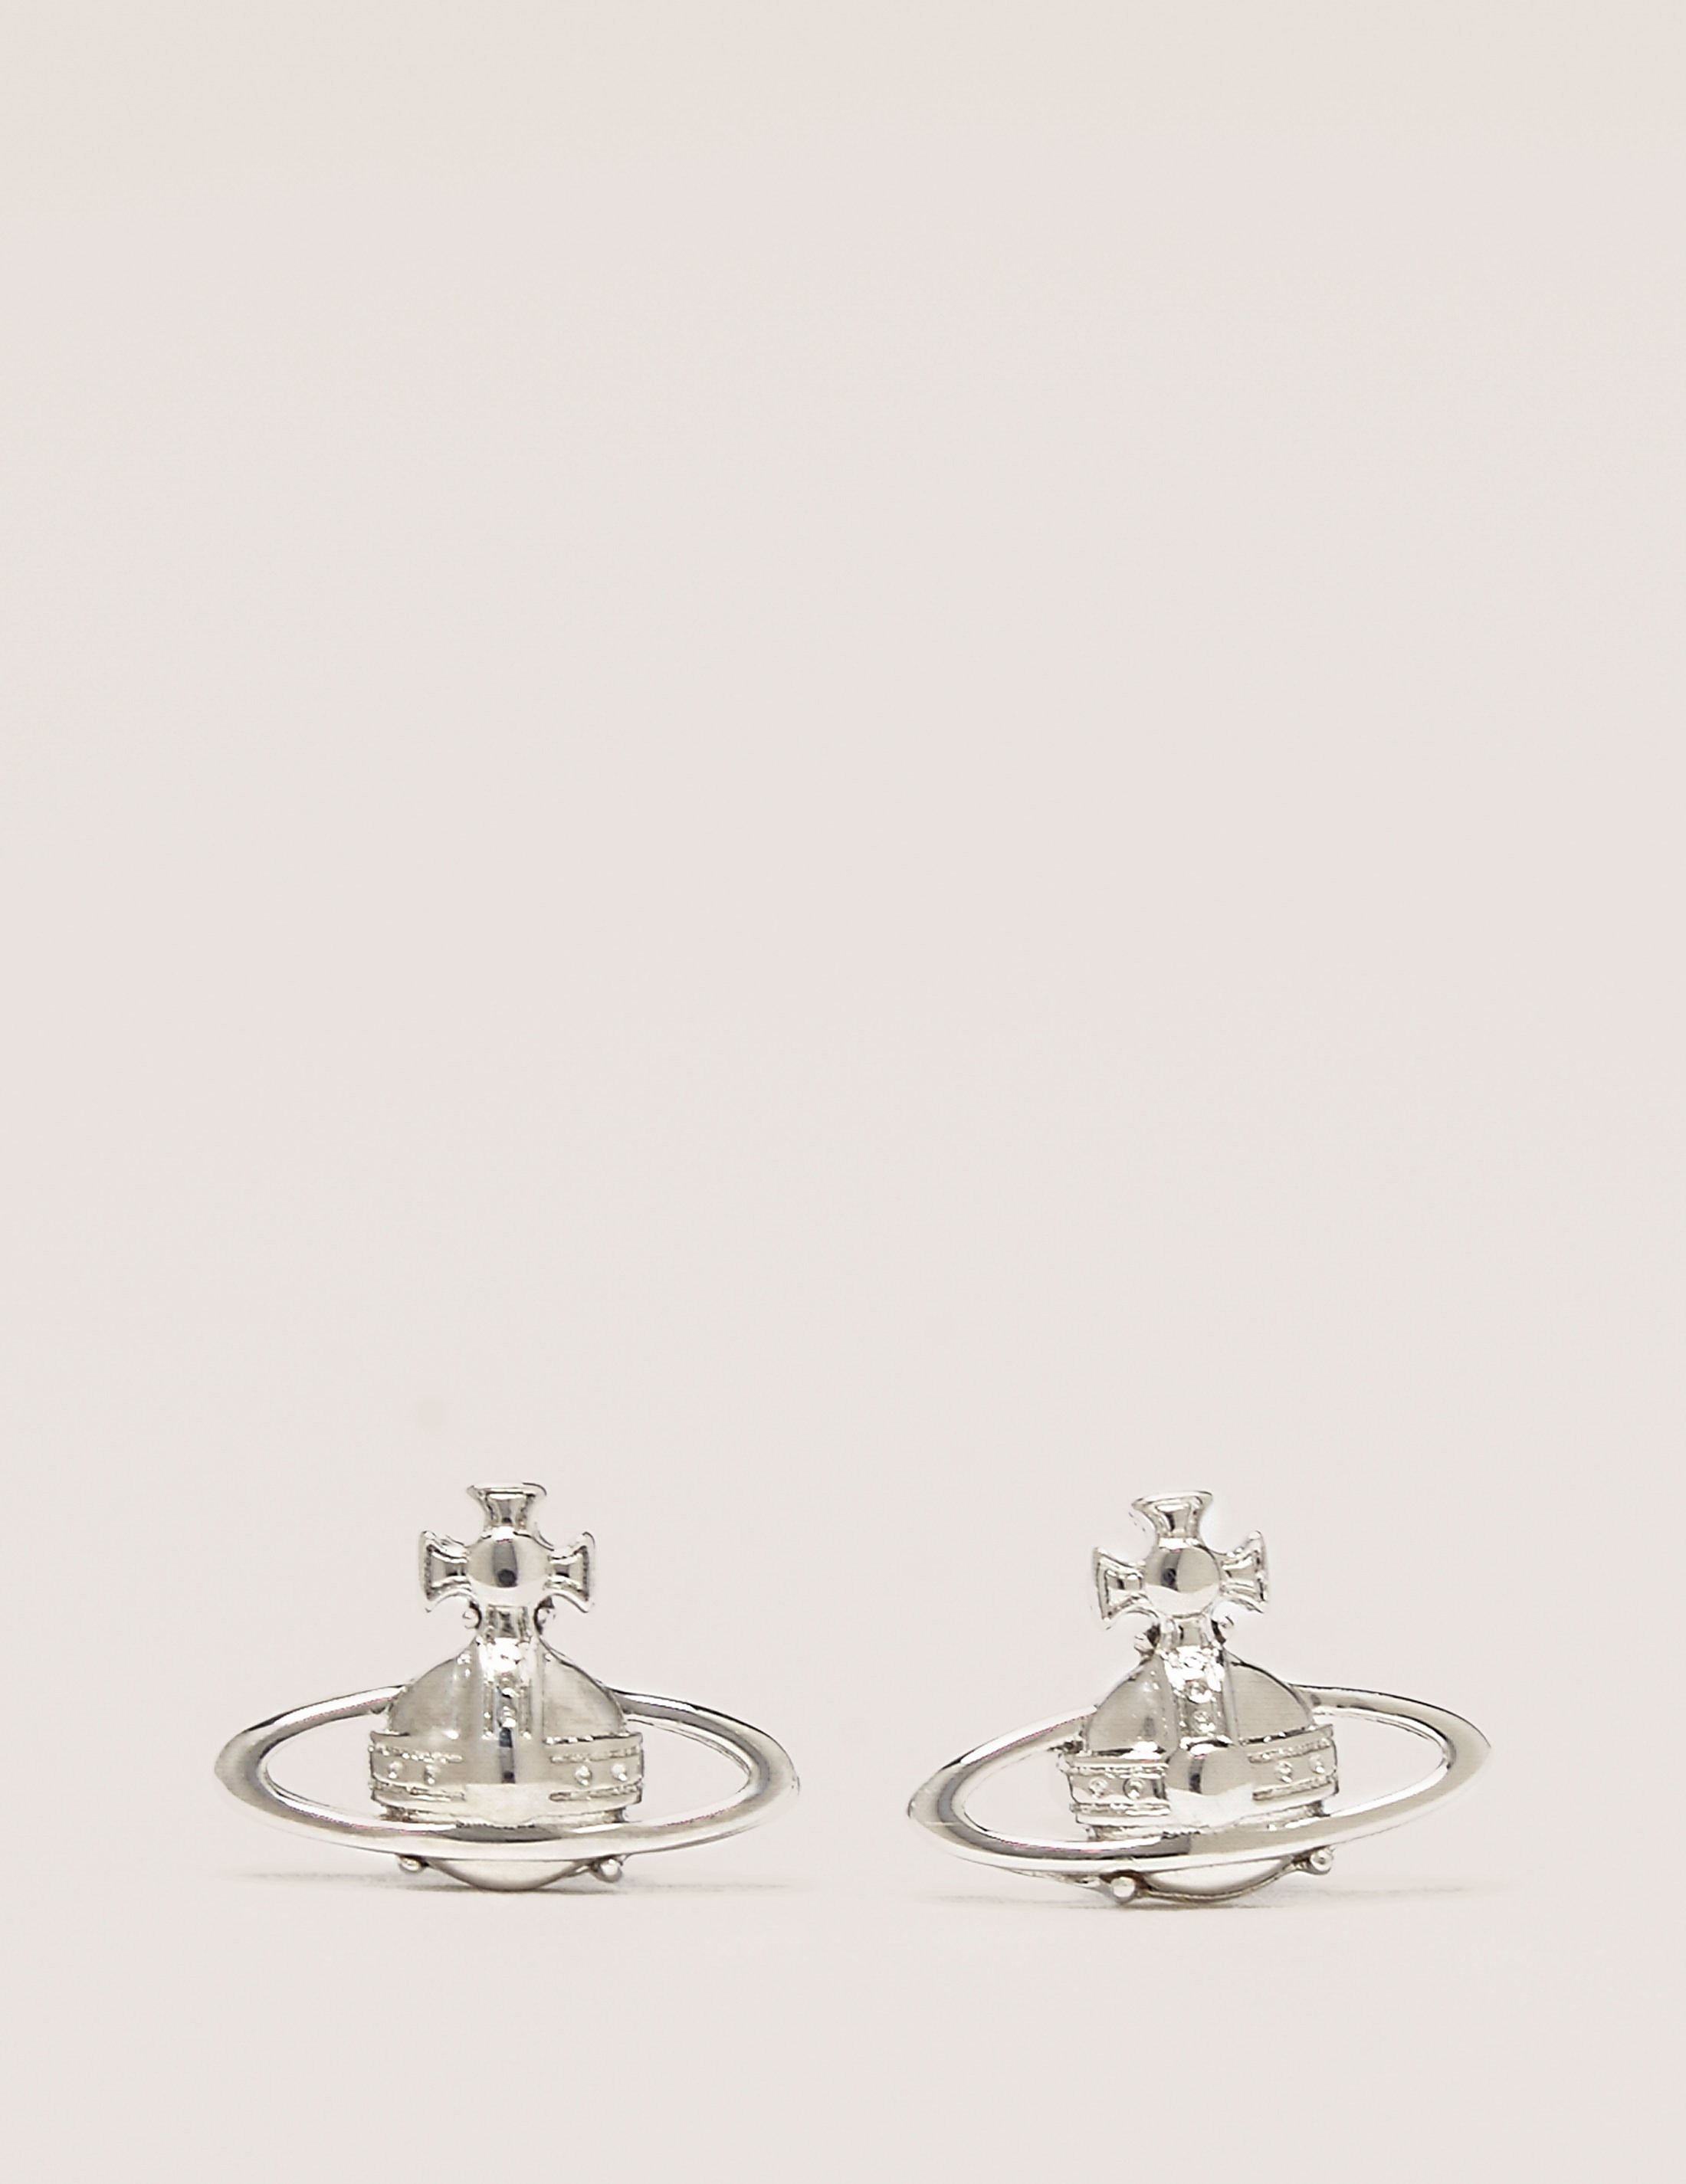 Vivienne Westwood Suzie Earrings